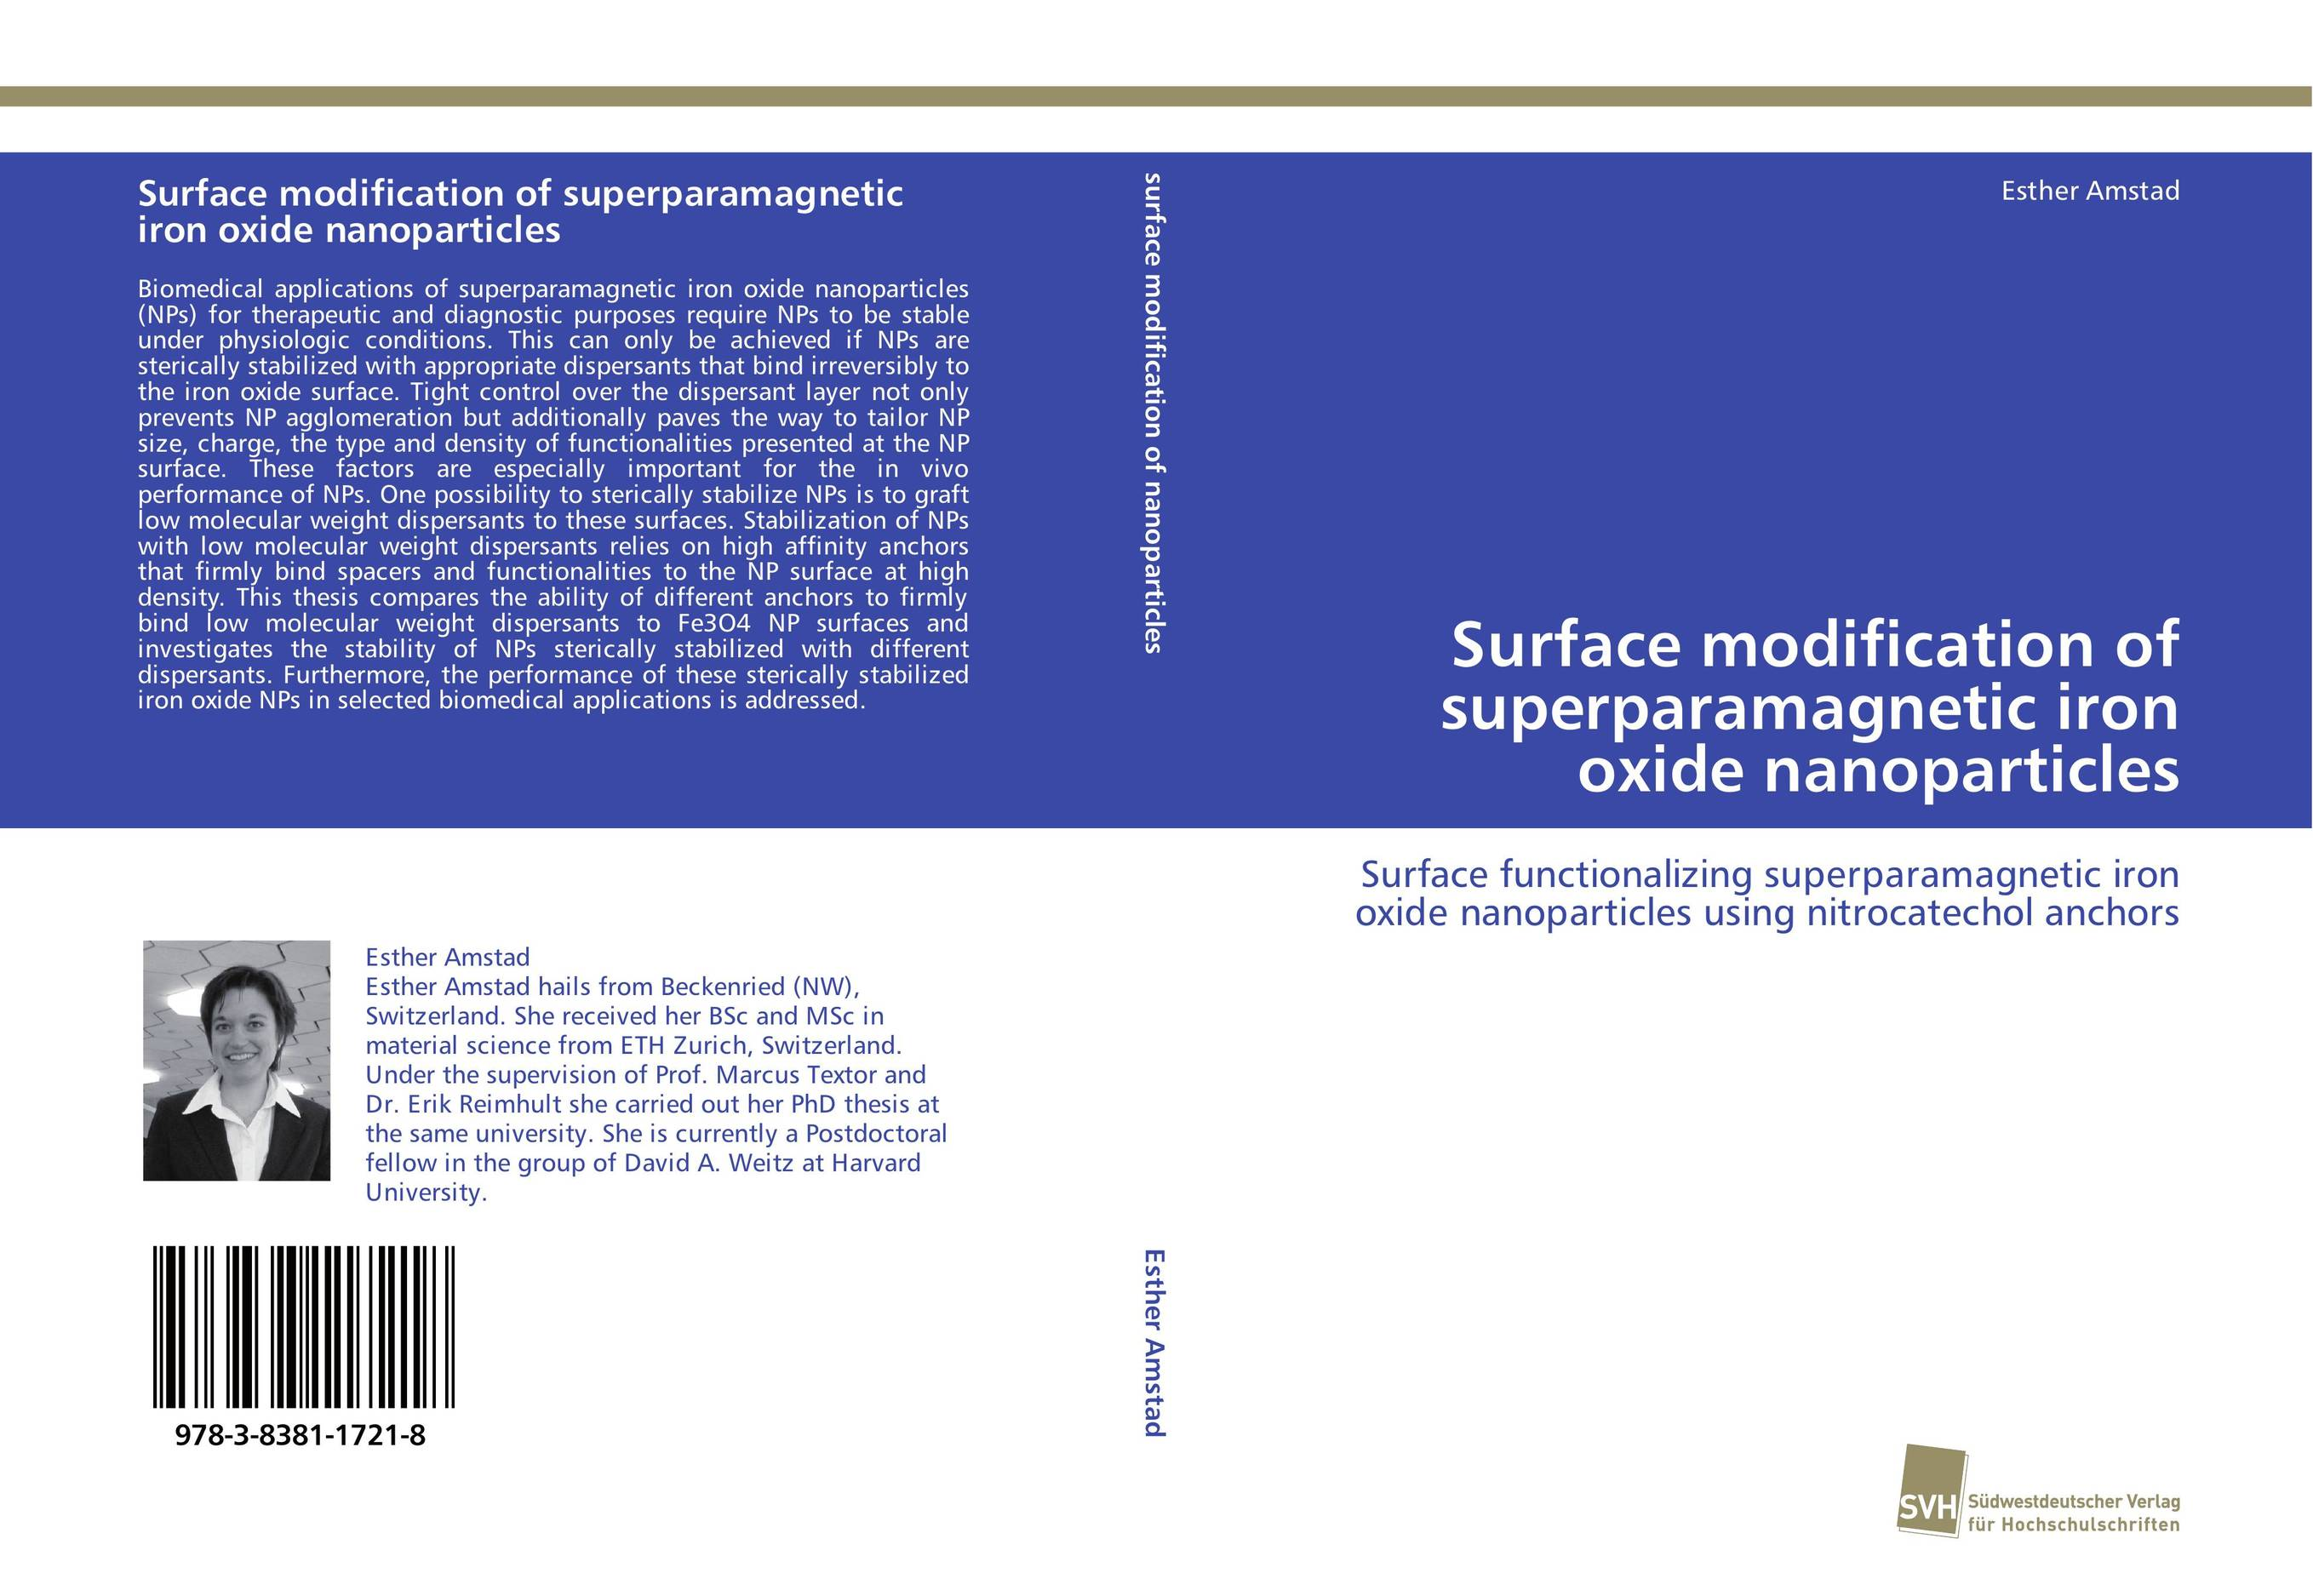 Surface modification of superparamagnetic iron oxide nanoparticles